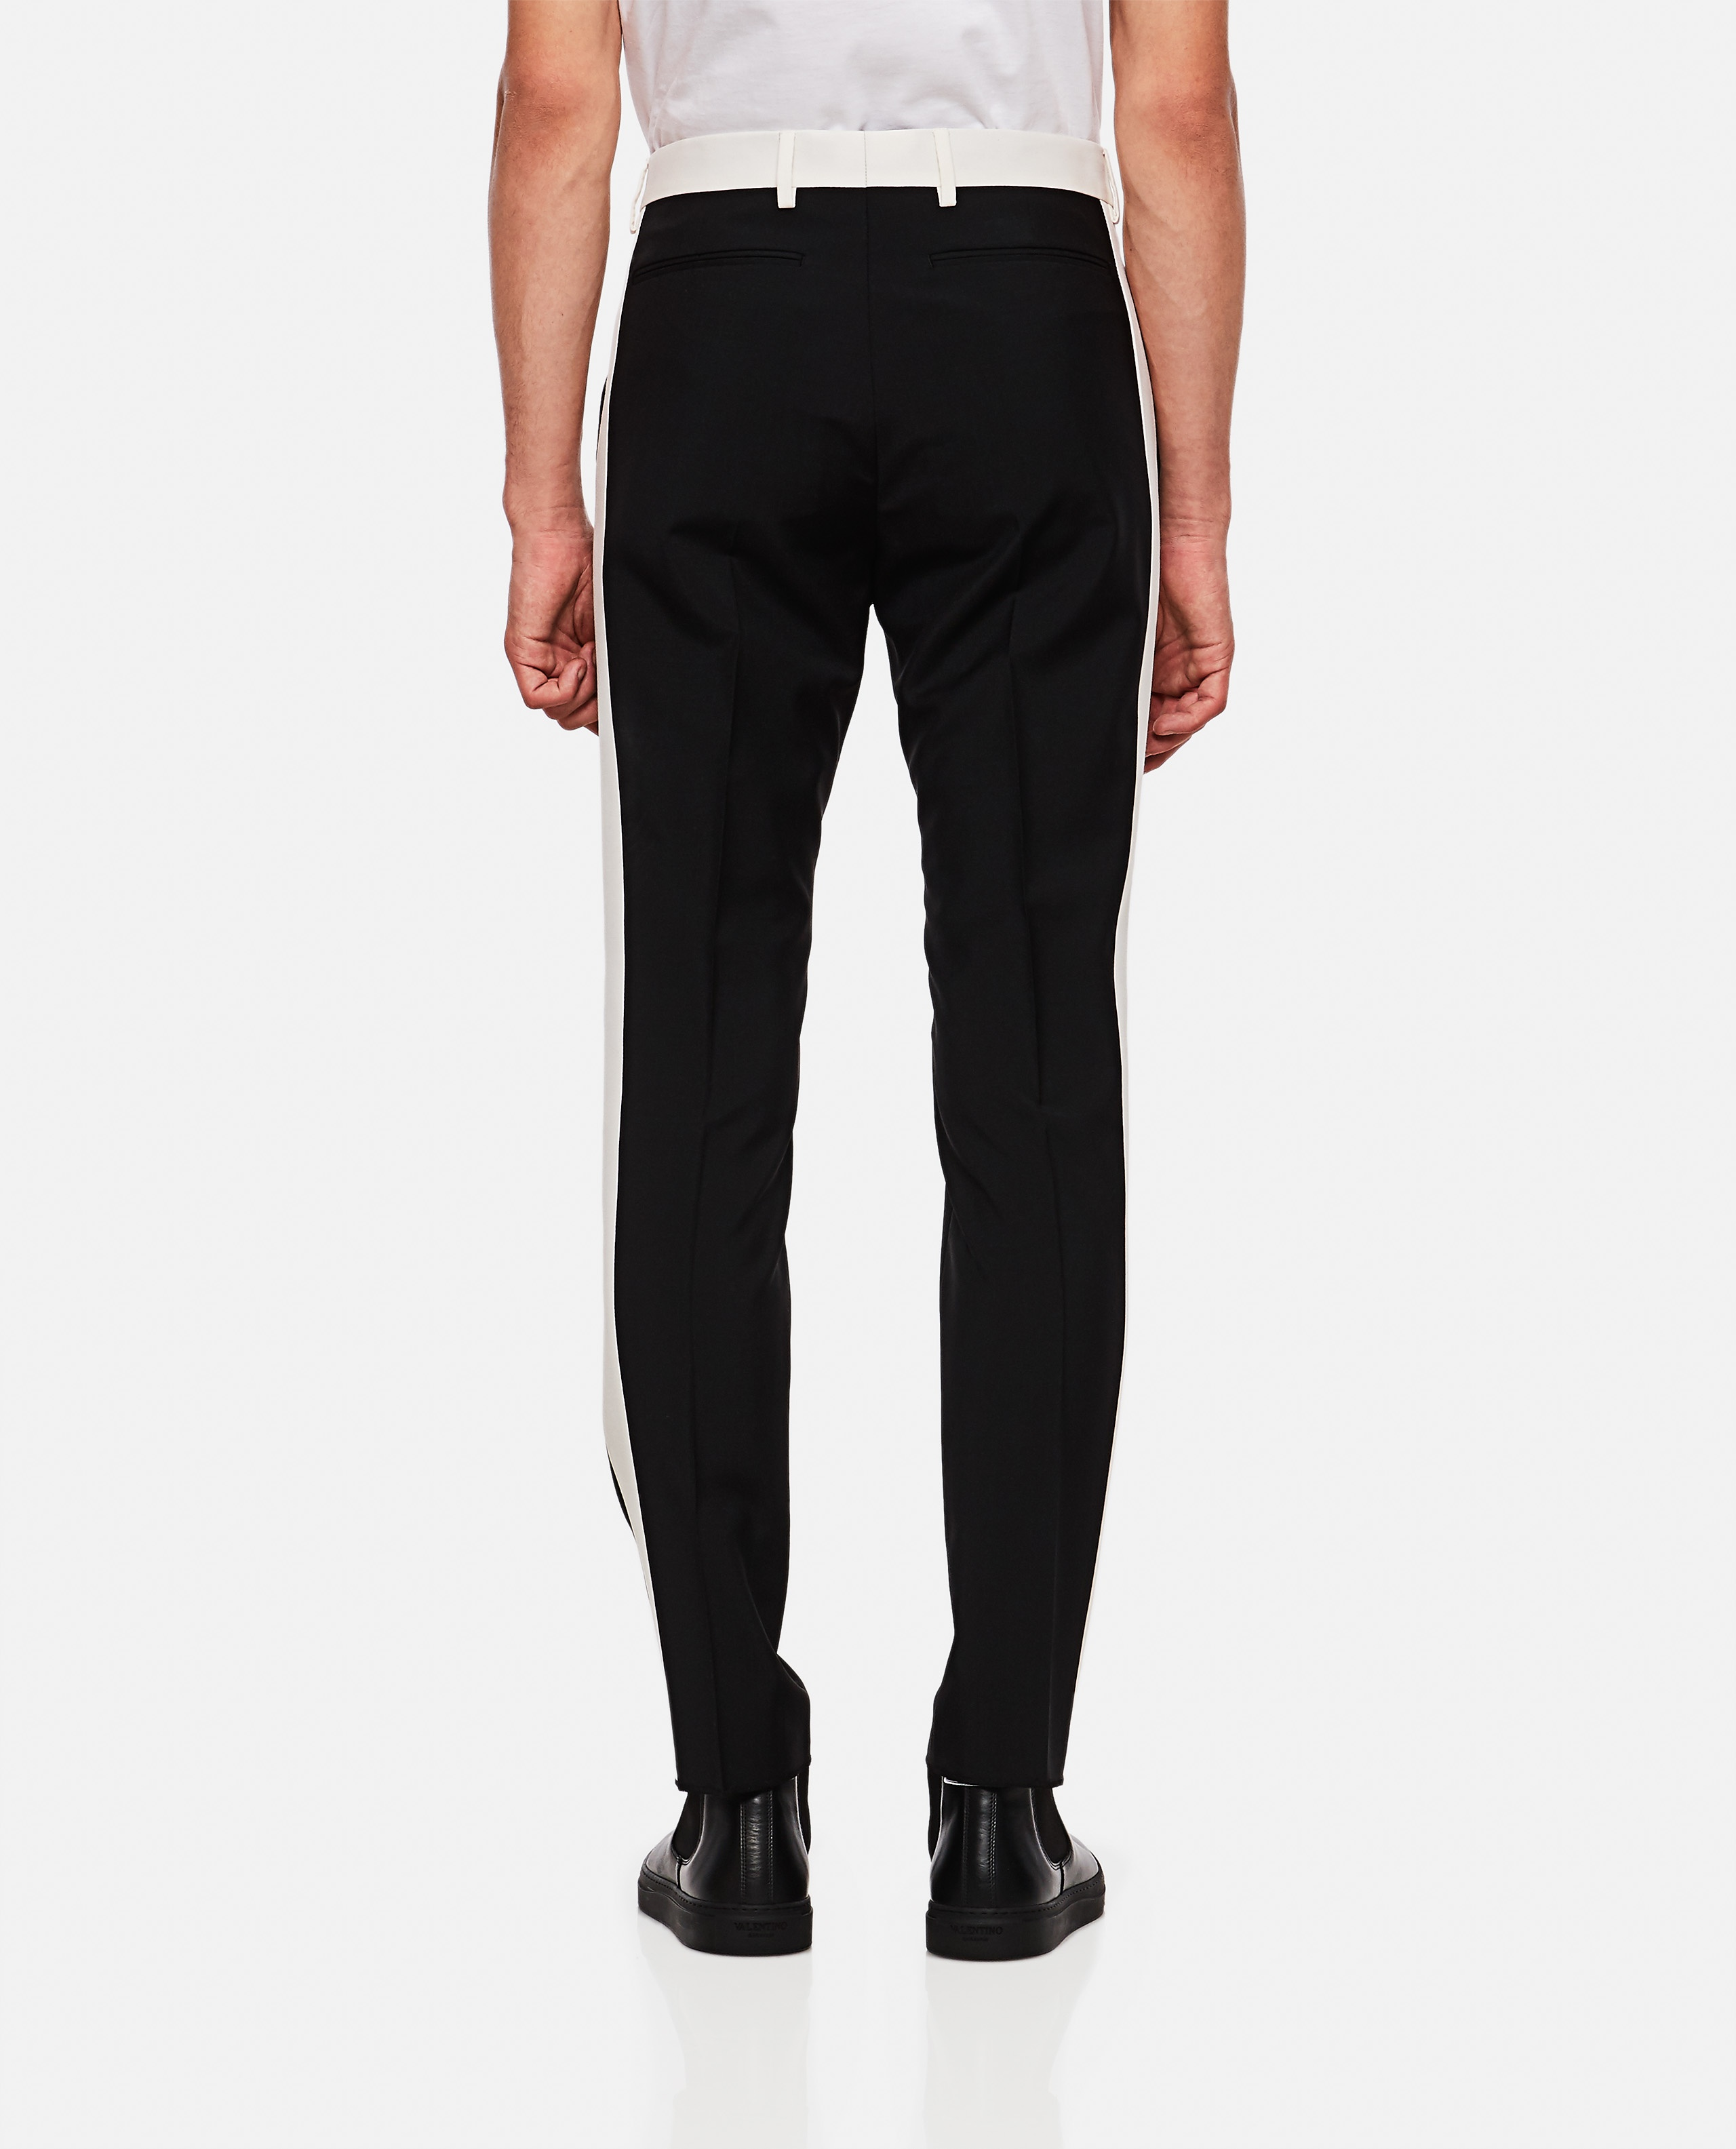 Trousers with side bands Men Valentino 000263920039003 3